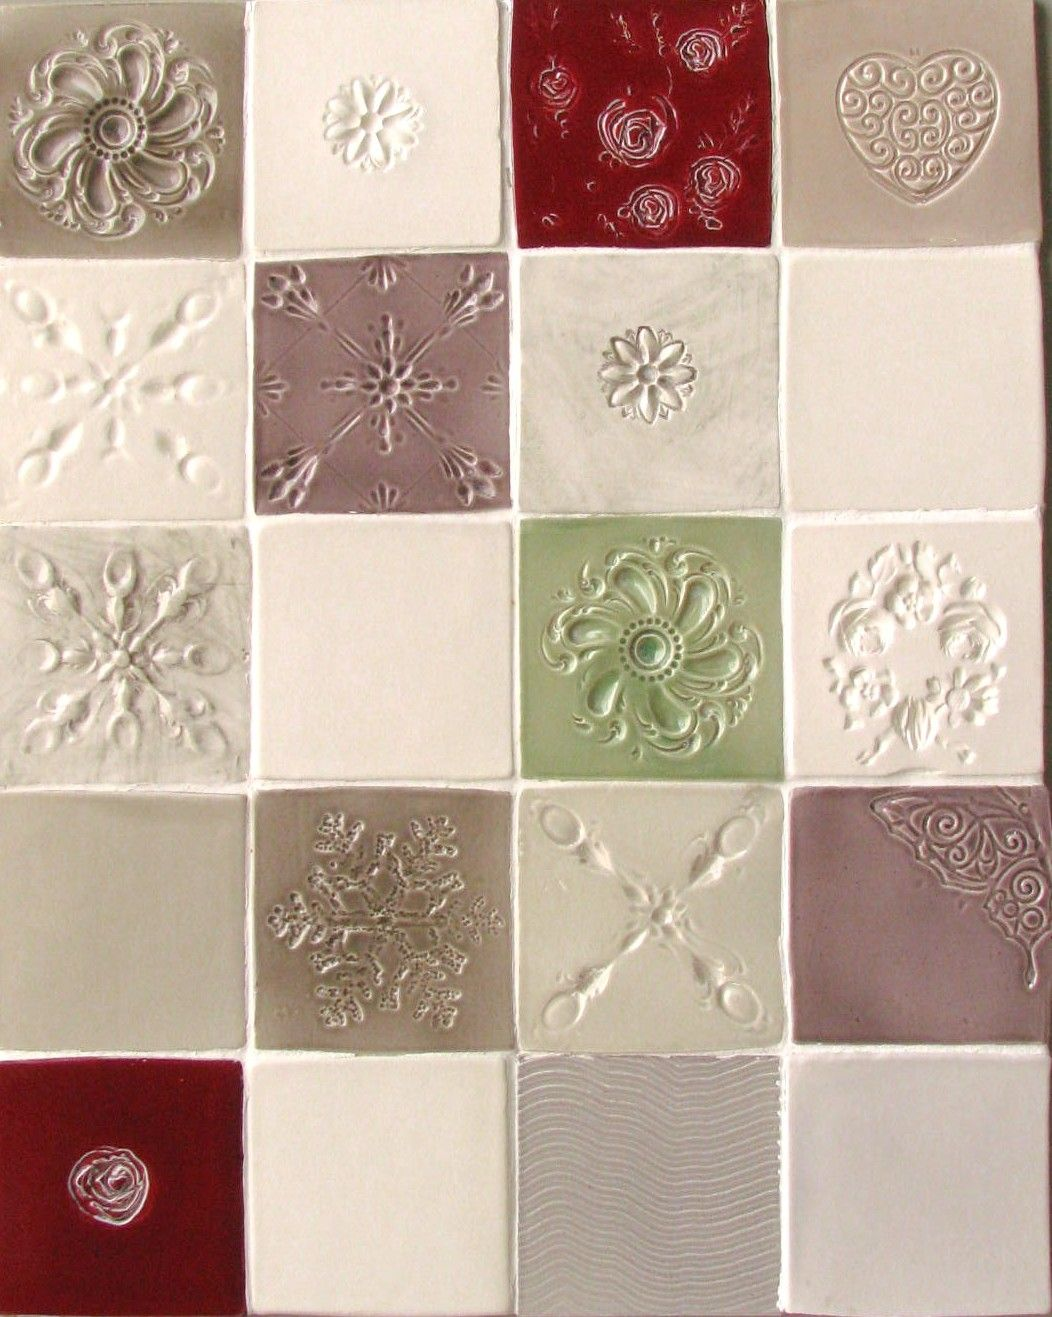 Carreaux Faience Emaillee 10x10 En Relief Decor Holiday Decor Home Decor